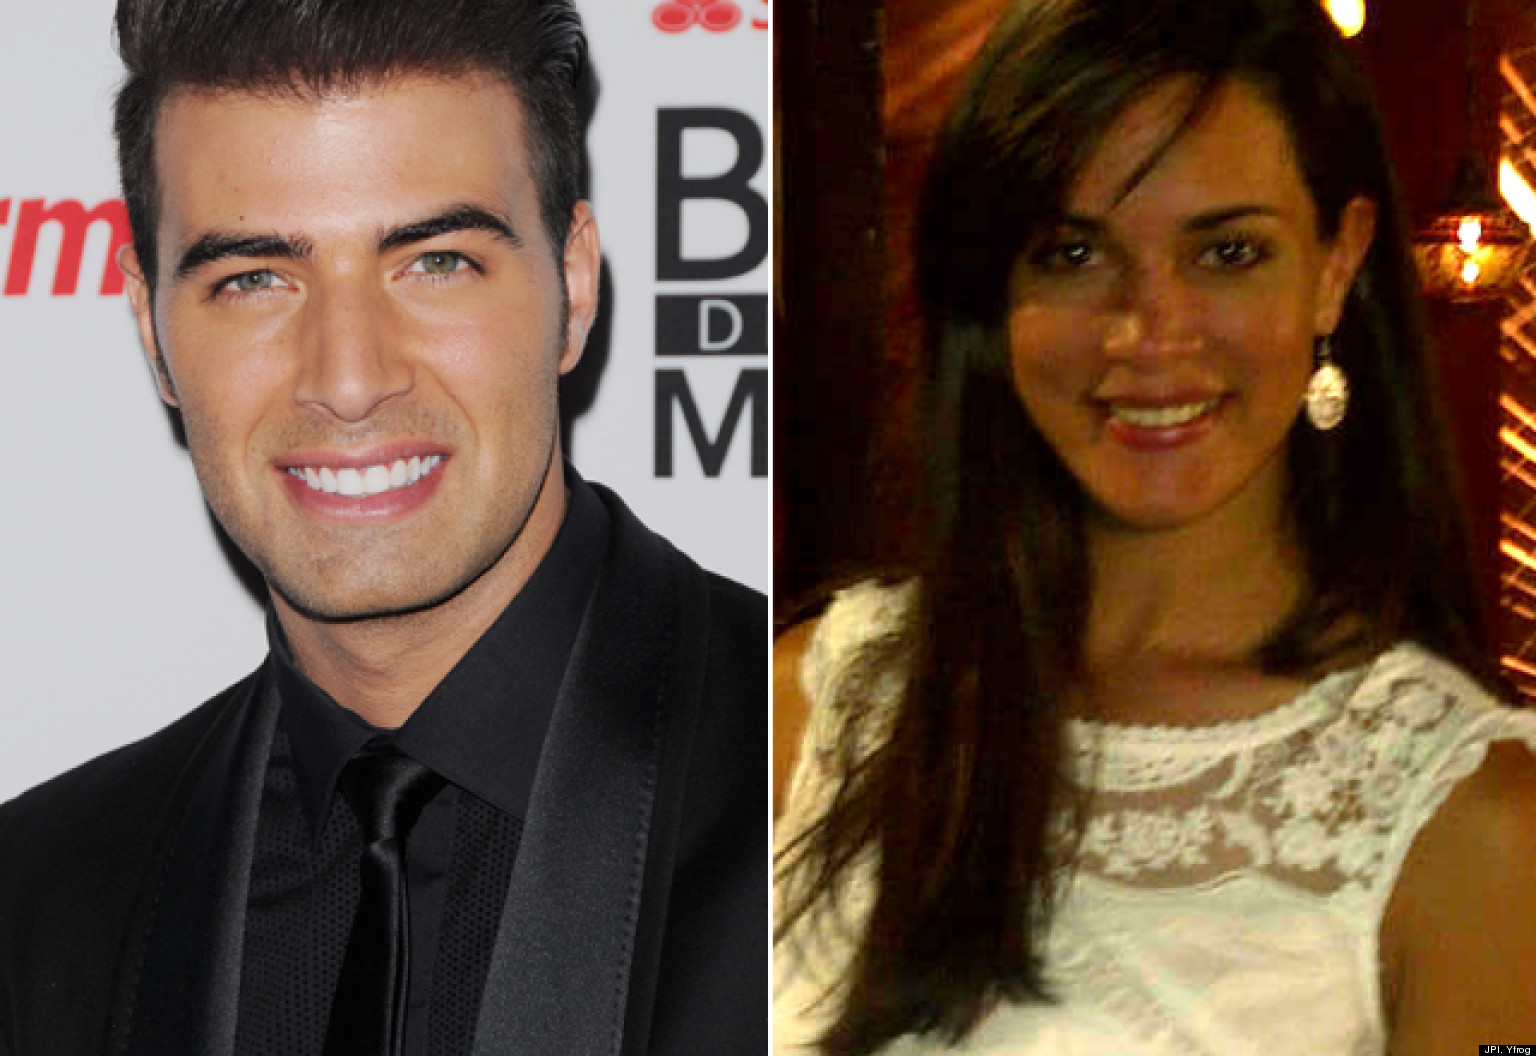 JENCARLOS-CANELA-MONICA-SPEAR-facebook.jpg